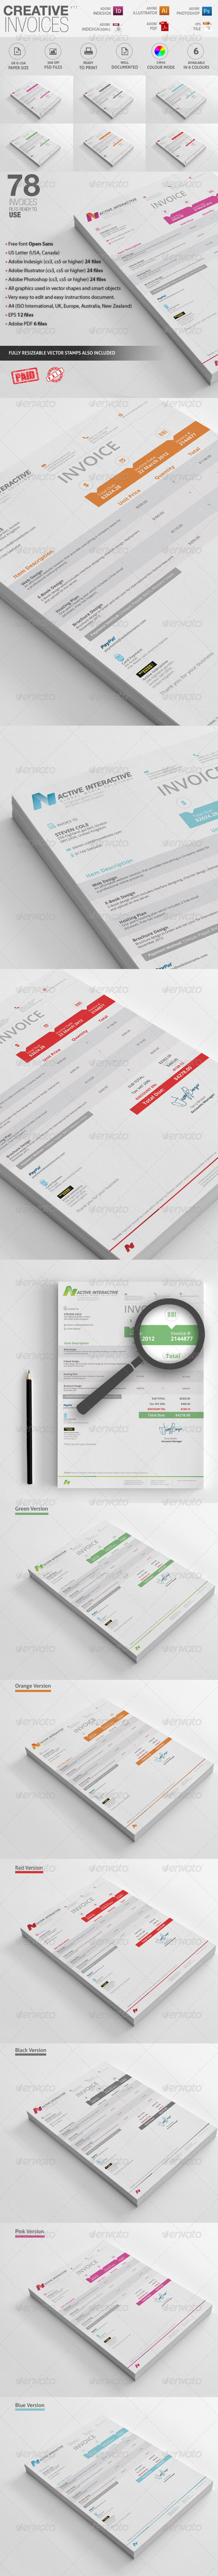 GraphicRiver Invoices 7012176